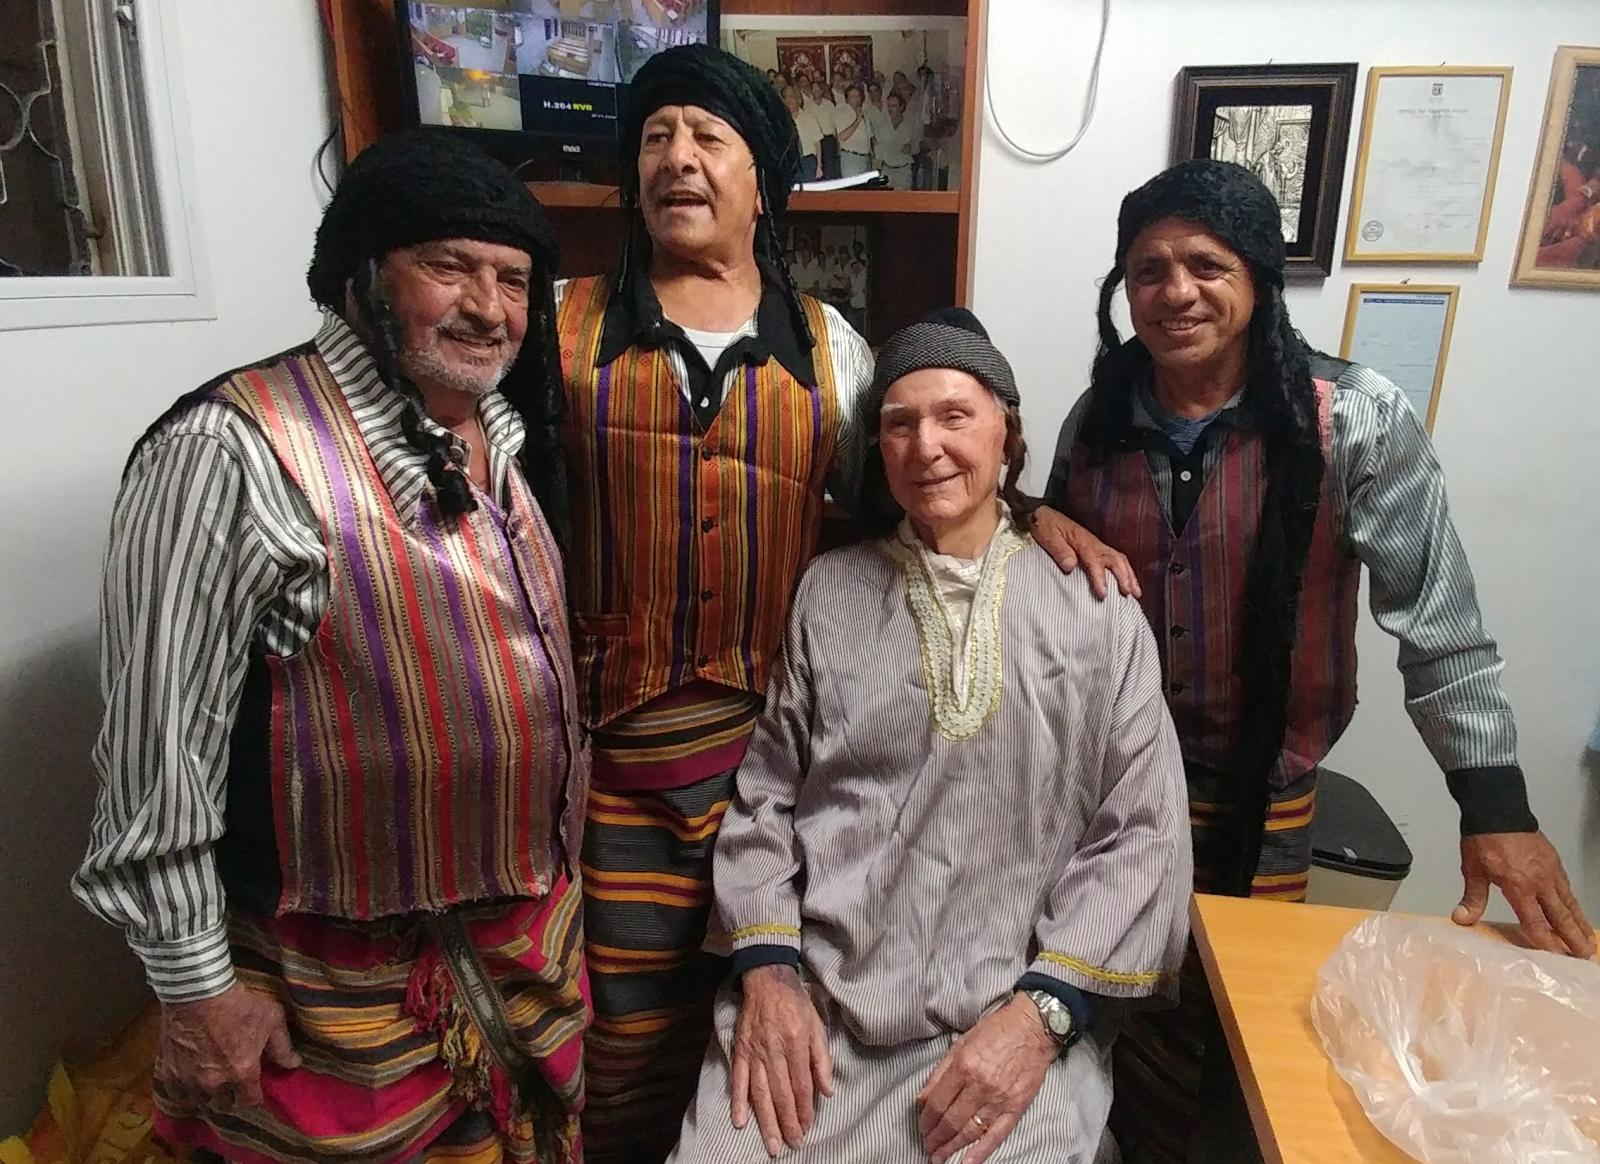 Captain Long (seated), wearing traditional Yemenite clothing and enjoying himself (Photo: Danny Beller)